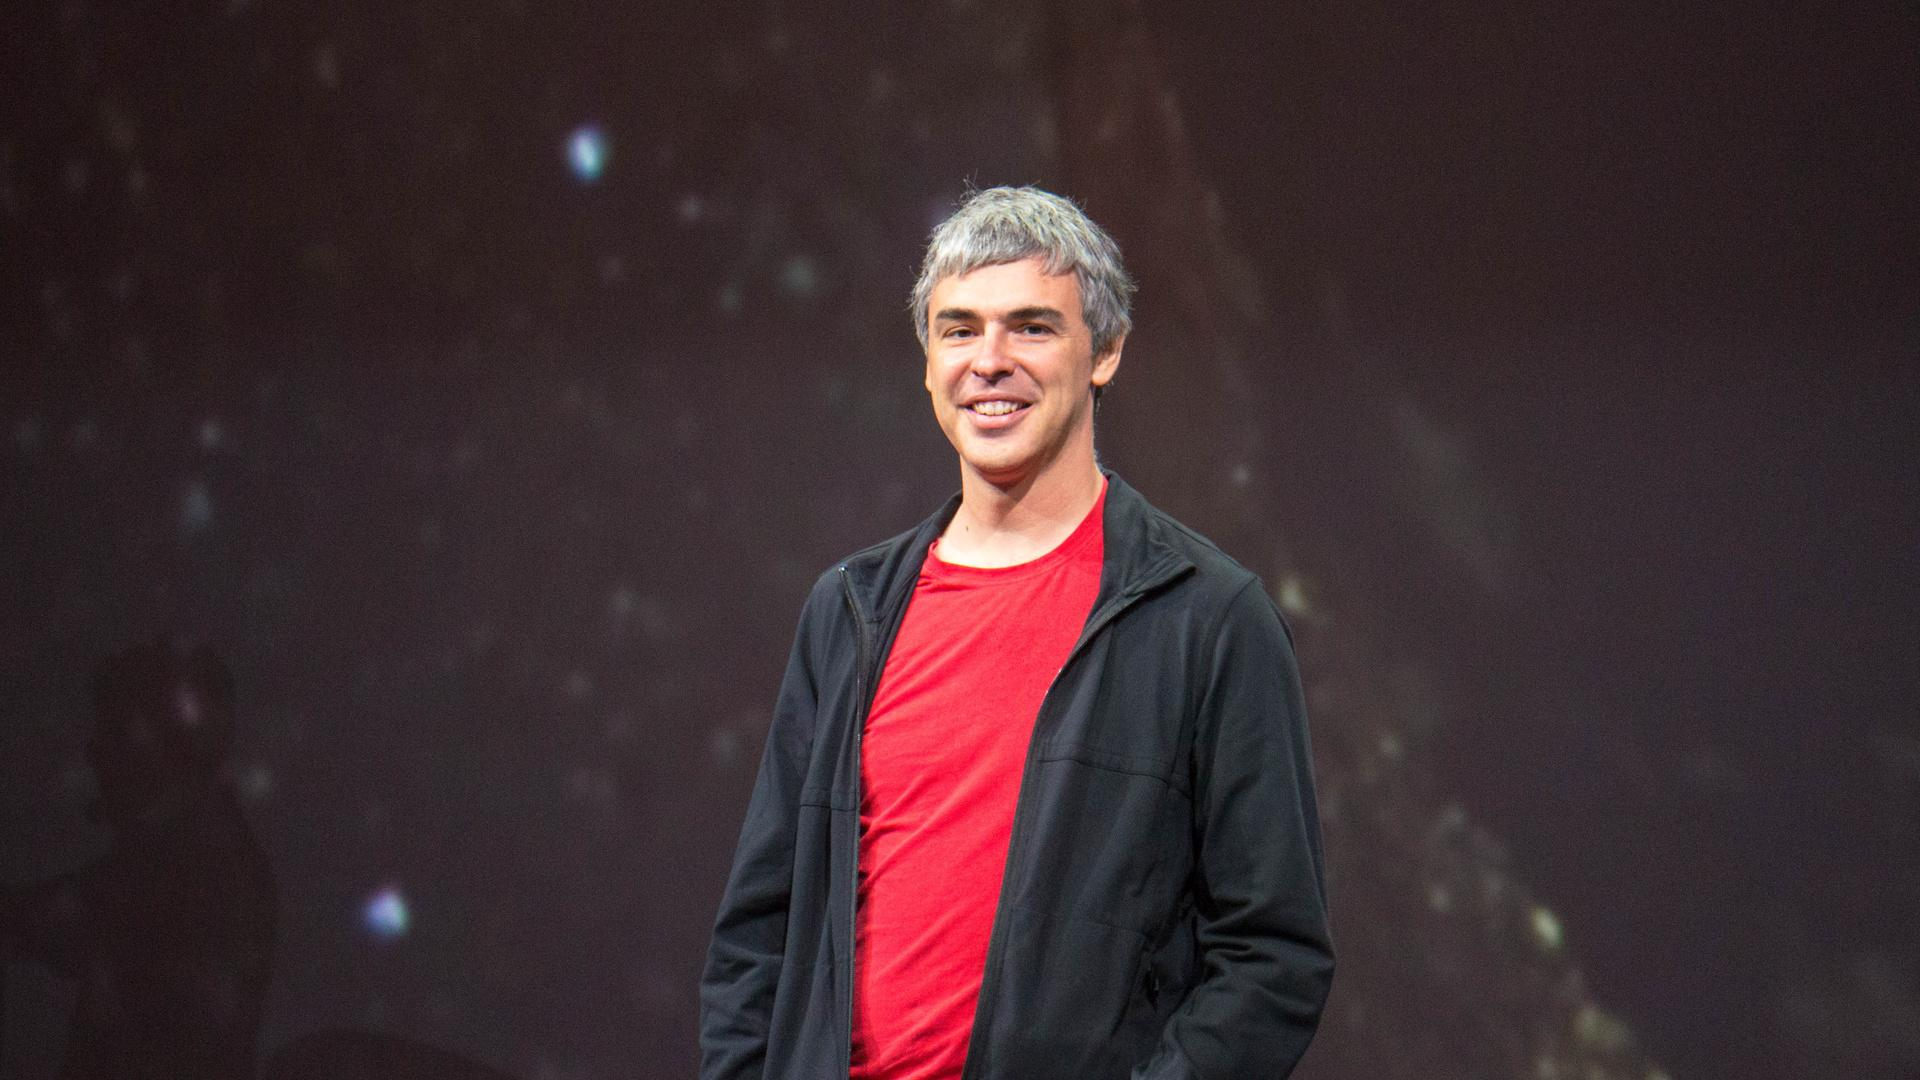 1920x1080 Larry Page, Google Ceo, Photos Of Larry Page, Larry Page ...